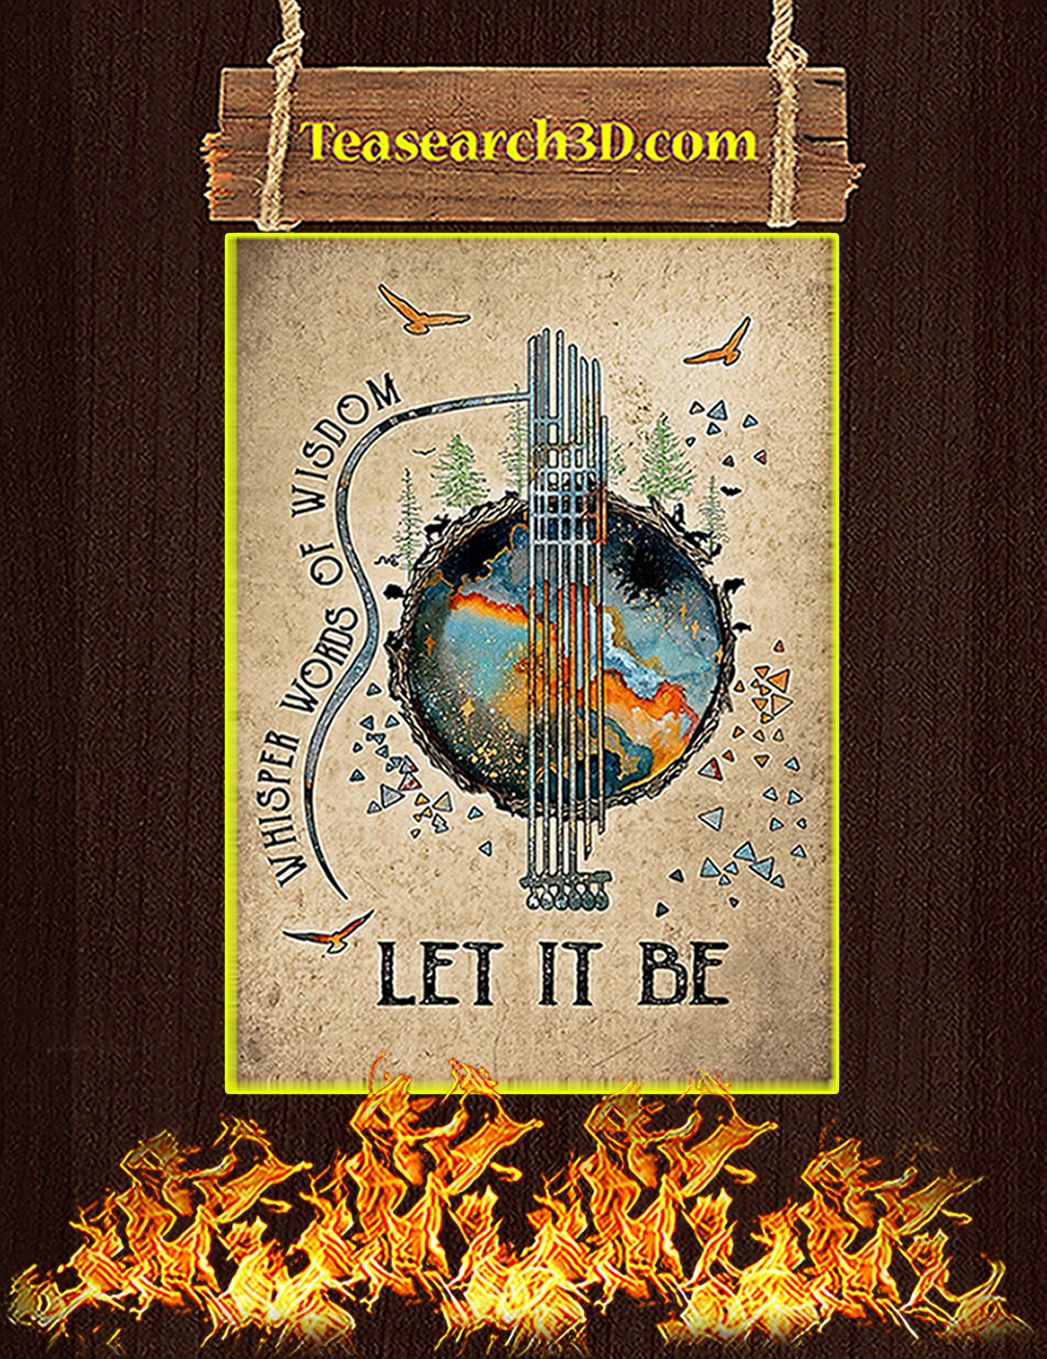 Whisper words of wisdom let it be earth poster A1